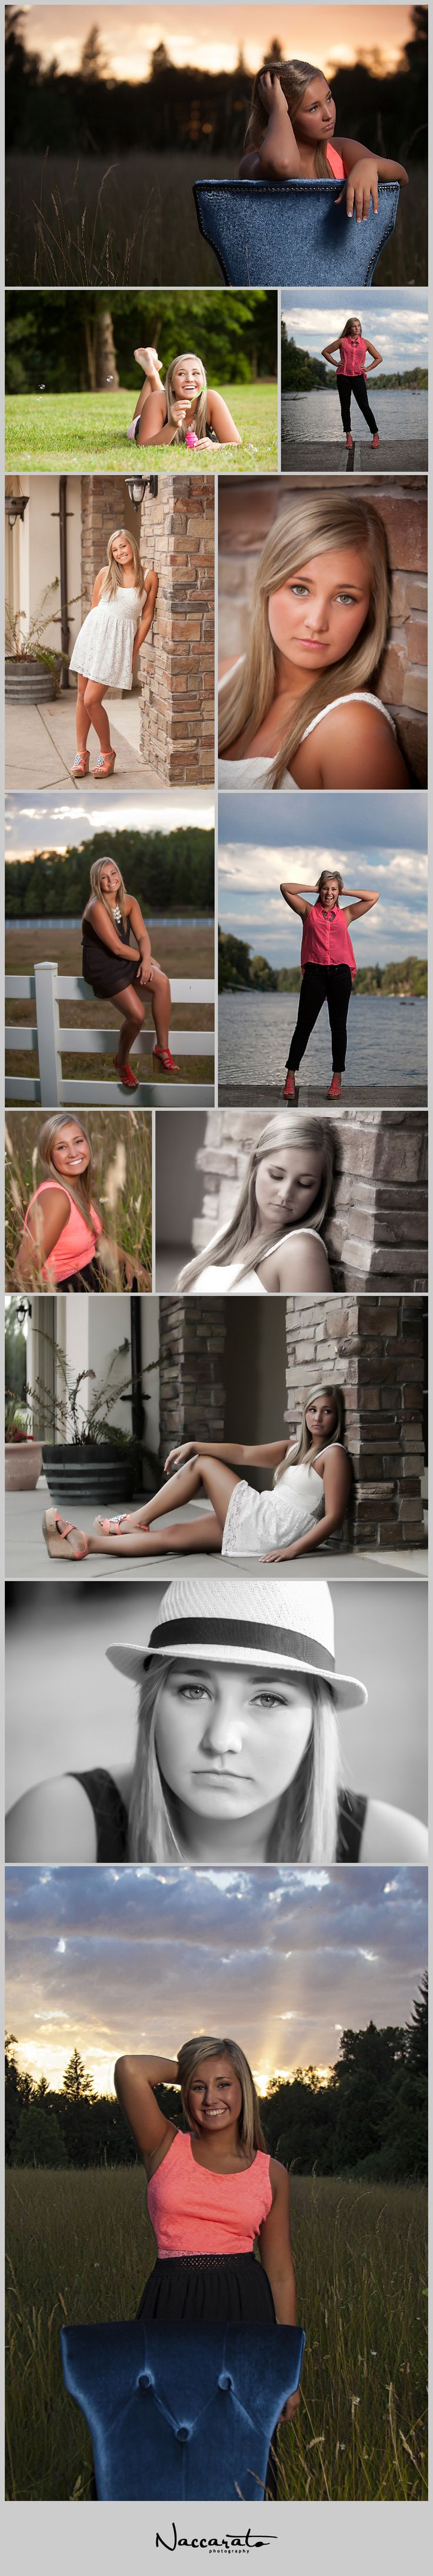 Abbie's Senior Pictures | Oregon City High School.  Oregon. Poses for Senior Girls. © Naccarato Photography.  If you are an Oregon High School student and want to be photographed by our studio, drop by our website and hit the Contact form.  We'd love it if you'd share this pin with any high school student :)